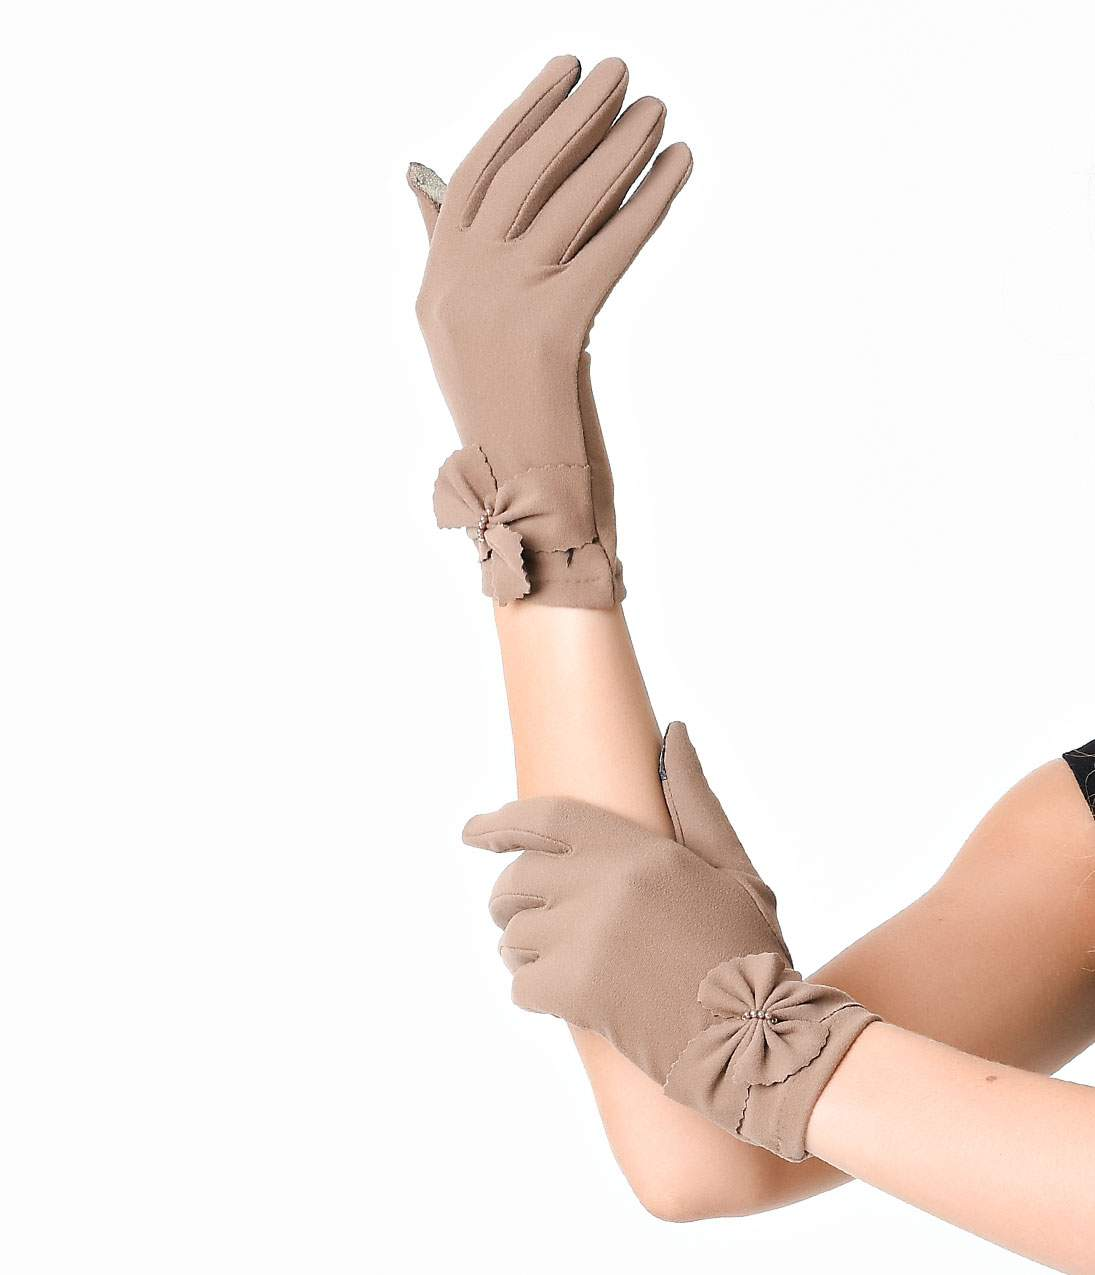 Vintage Style Gloves- Long, Wrist, Evening, Day, Leather, Lace Tan Wrist Length Zig Zag Bow Texting Gloves $18.00 AT vintagedancer.com